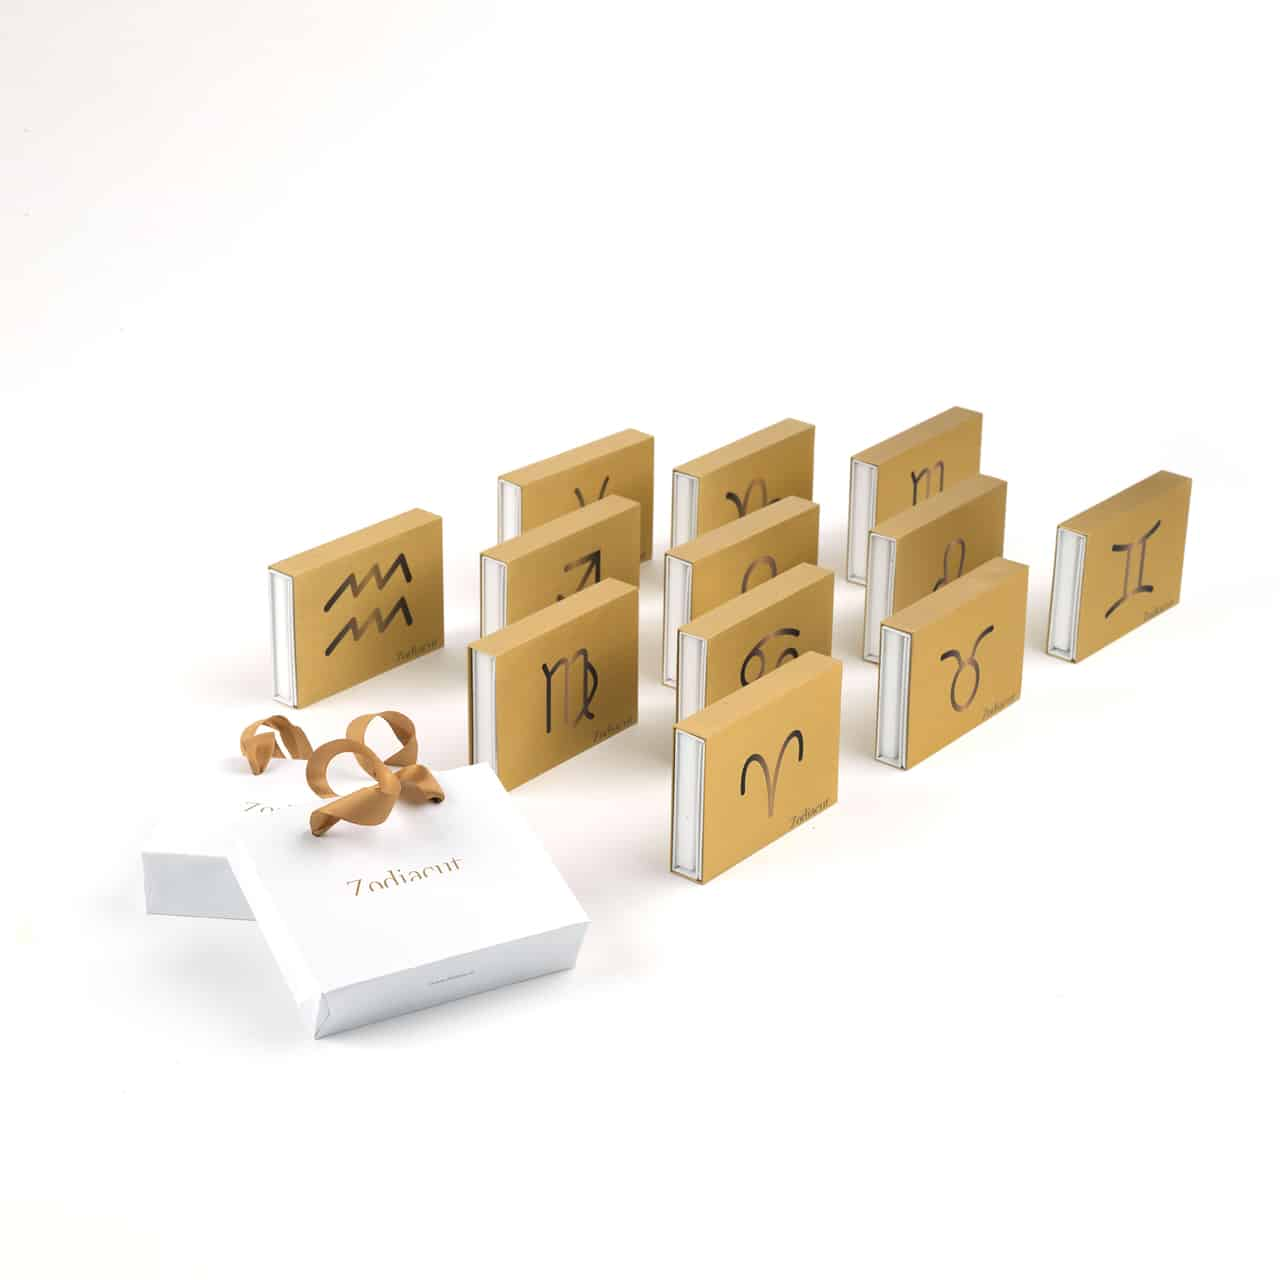 Zodiacut Zodiacal signs - Product picture